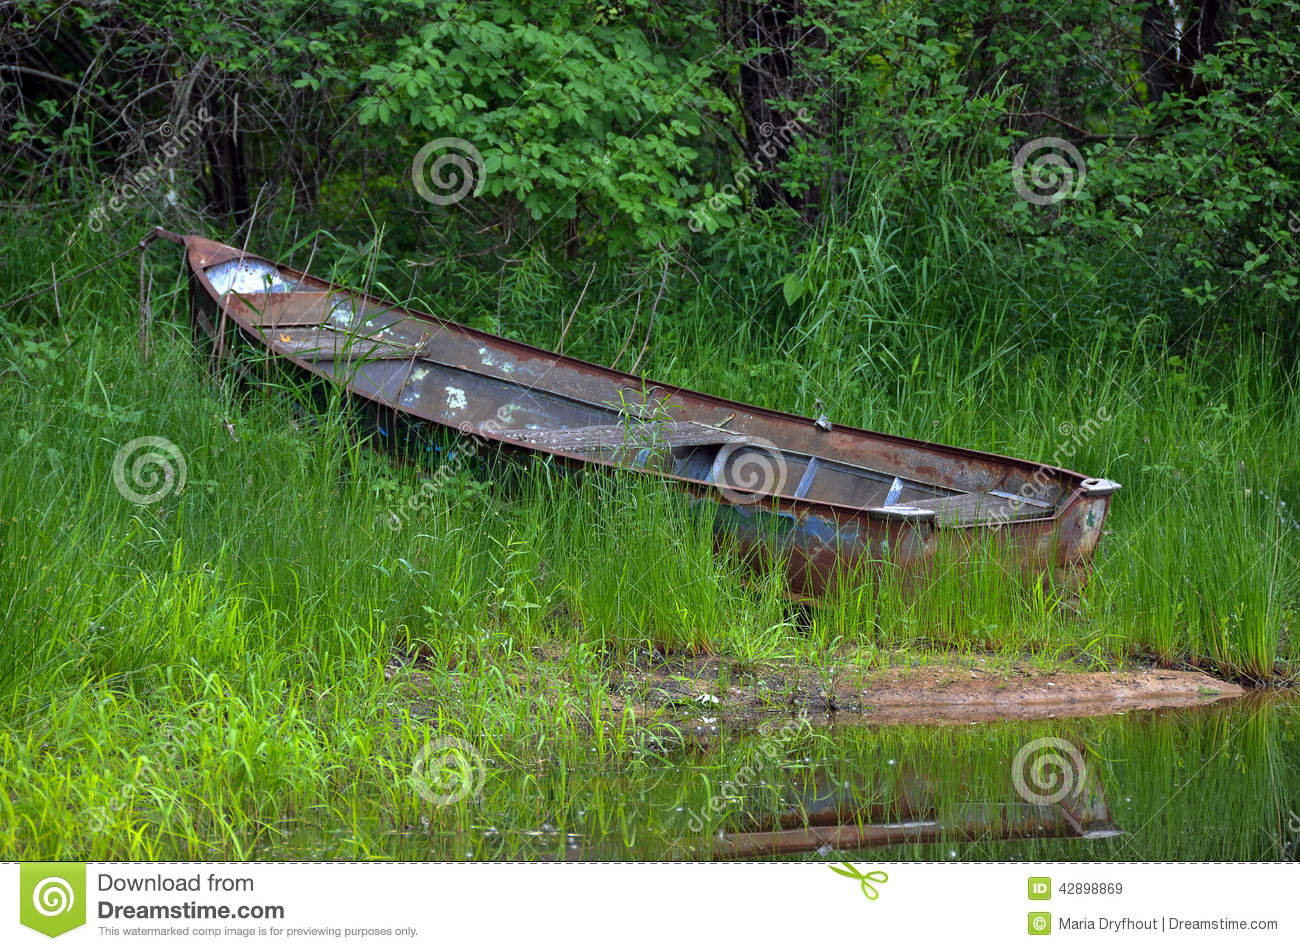 Abandoned rusty row boat in weeds with pond water reflection.